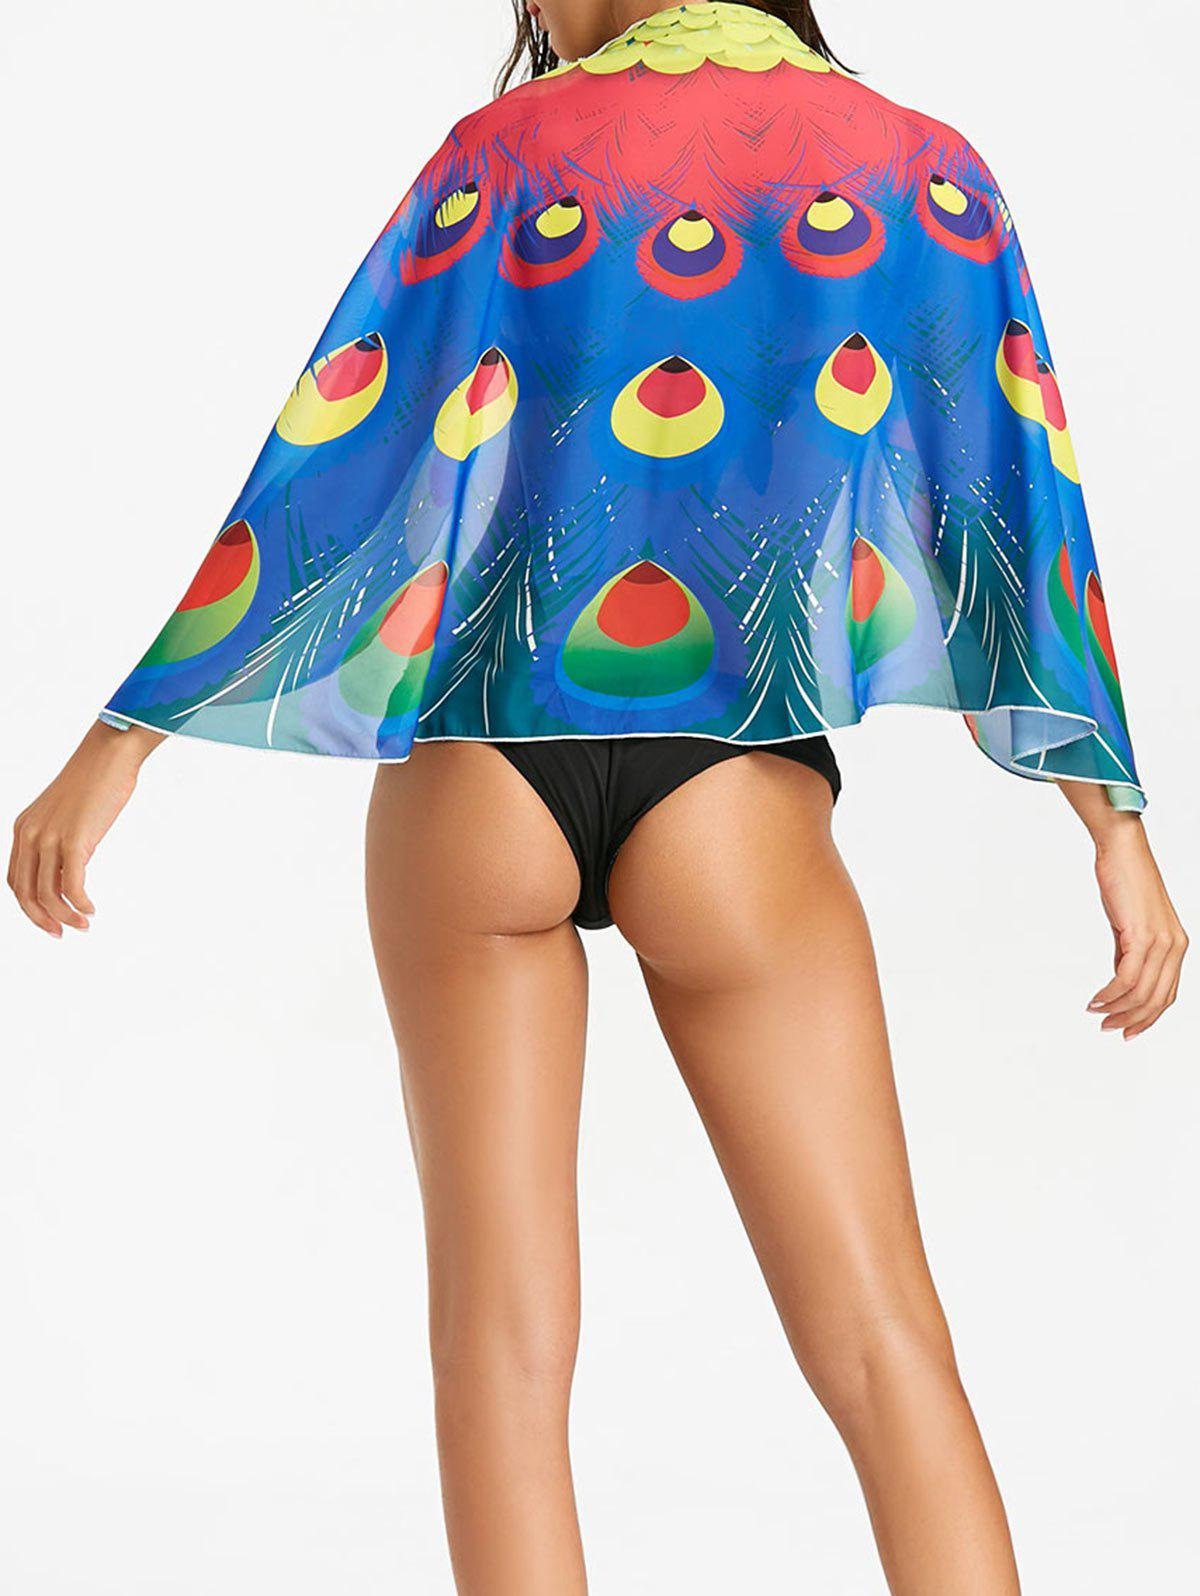 Peacock Feathers Prined Beach Cover Up - COLORMIX ONE SIZE